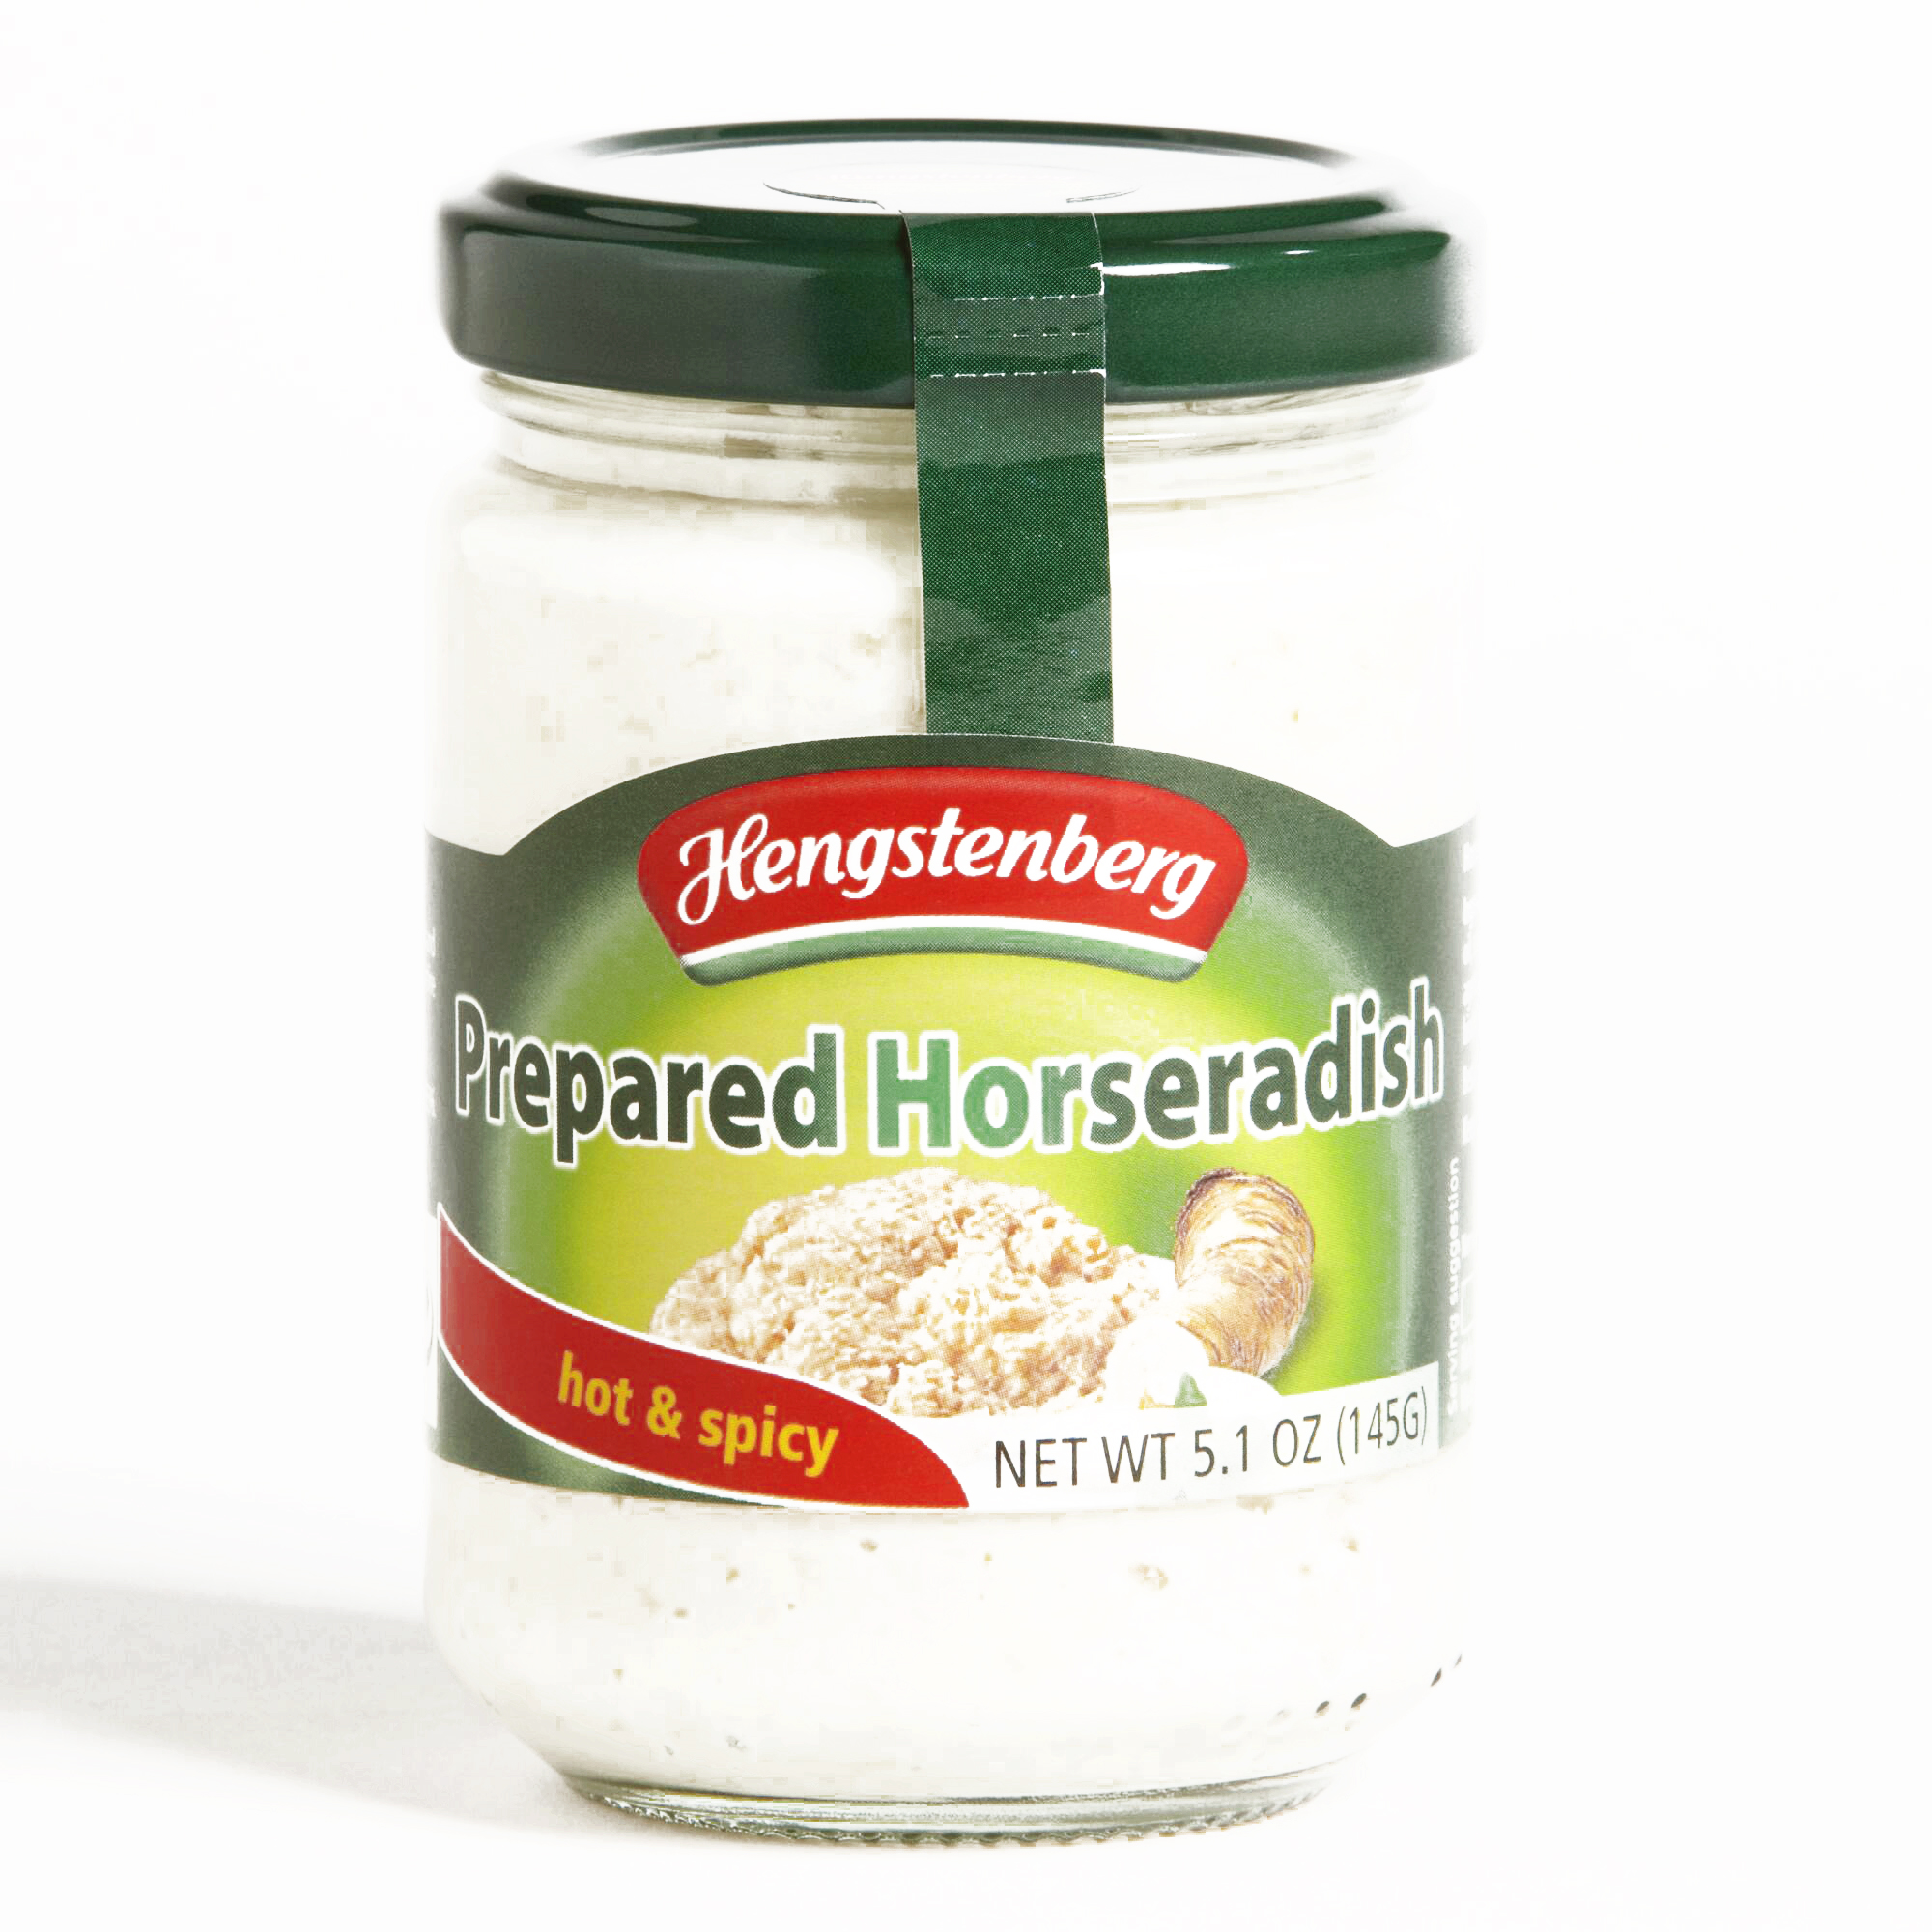 Hengstenberg Prepared Horseradish \t5.1 oz each (2 Items Per Order, not per case) by